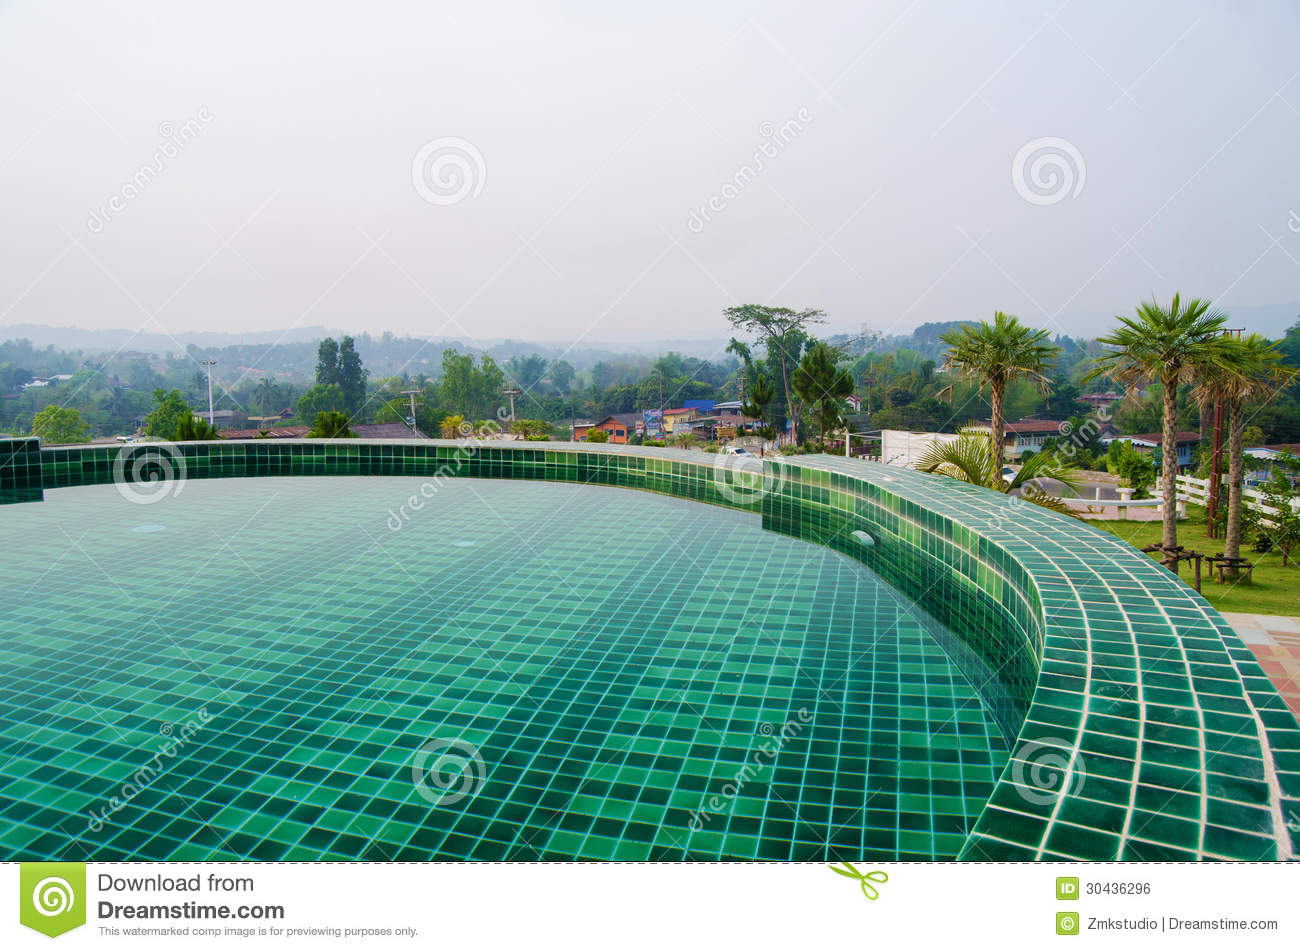 Swimming Pool In Resort Royalty Free Stock Image - Image ...